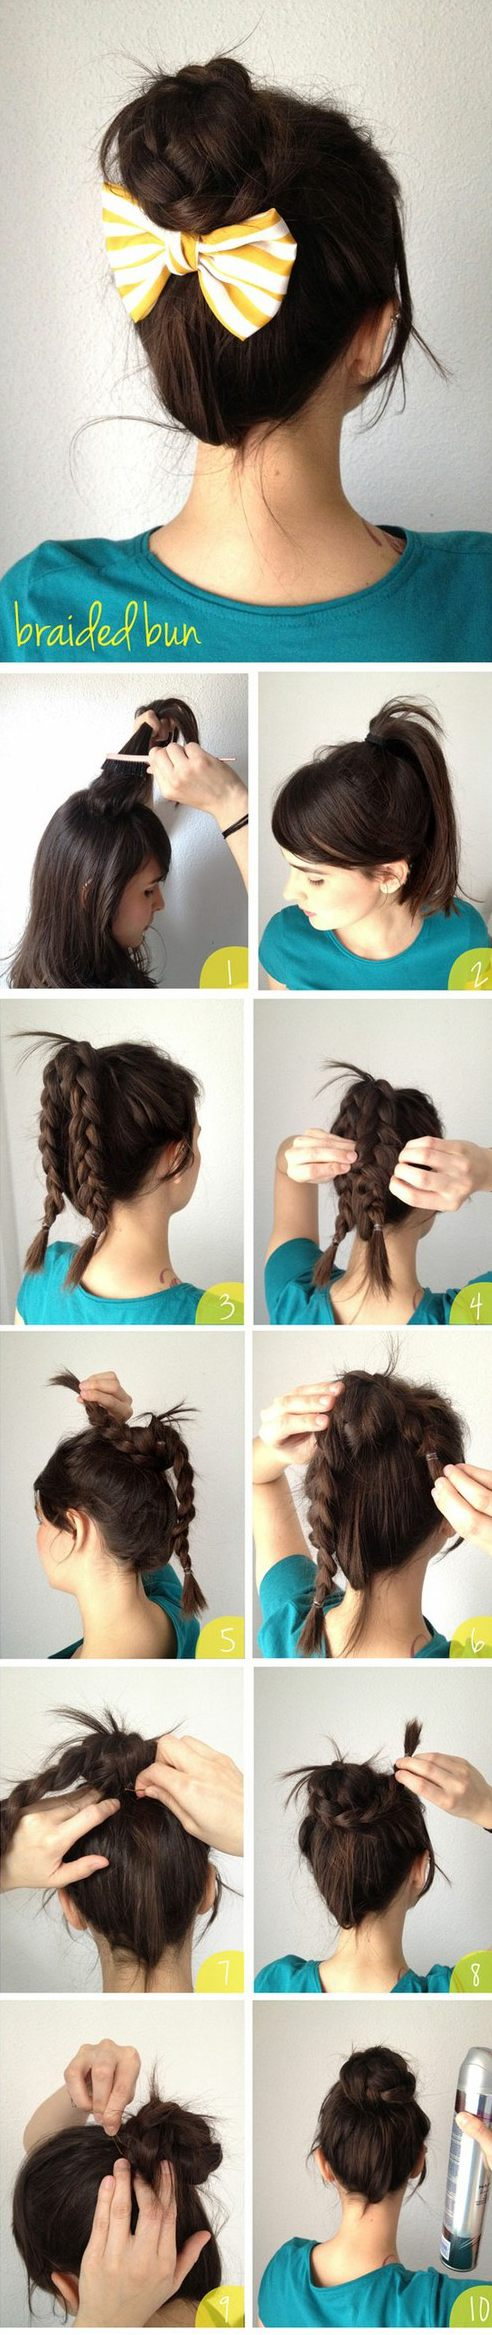 Super easy bun idea for a long day at work then add the bow if you